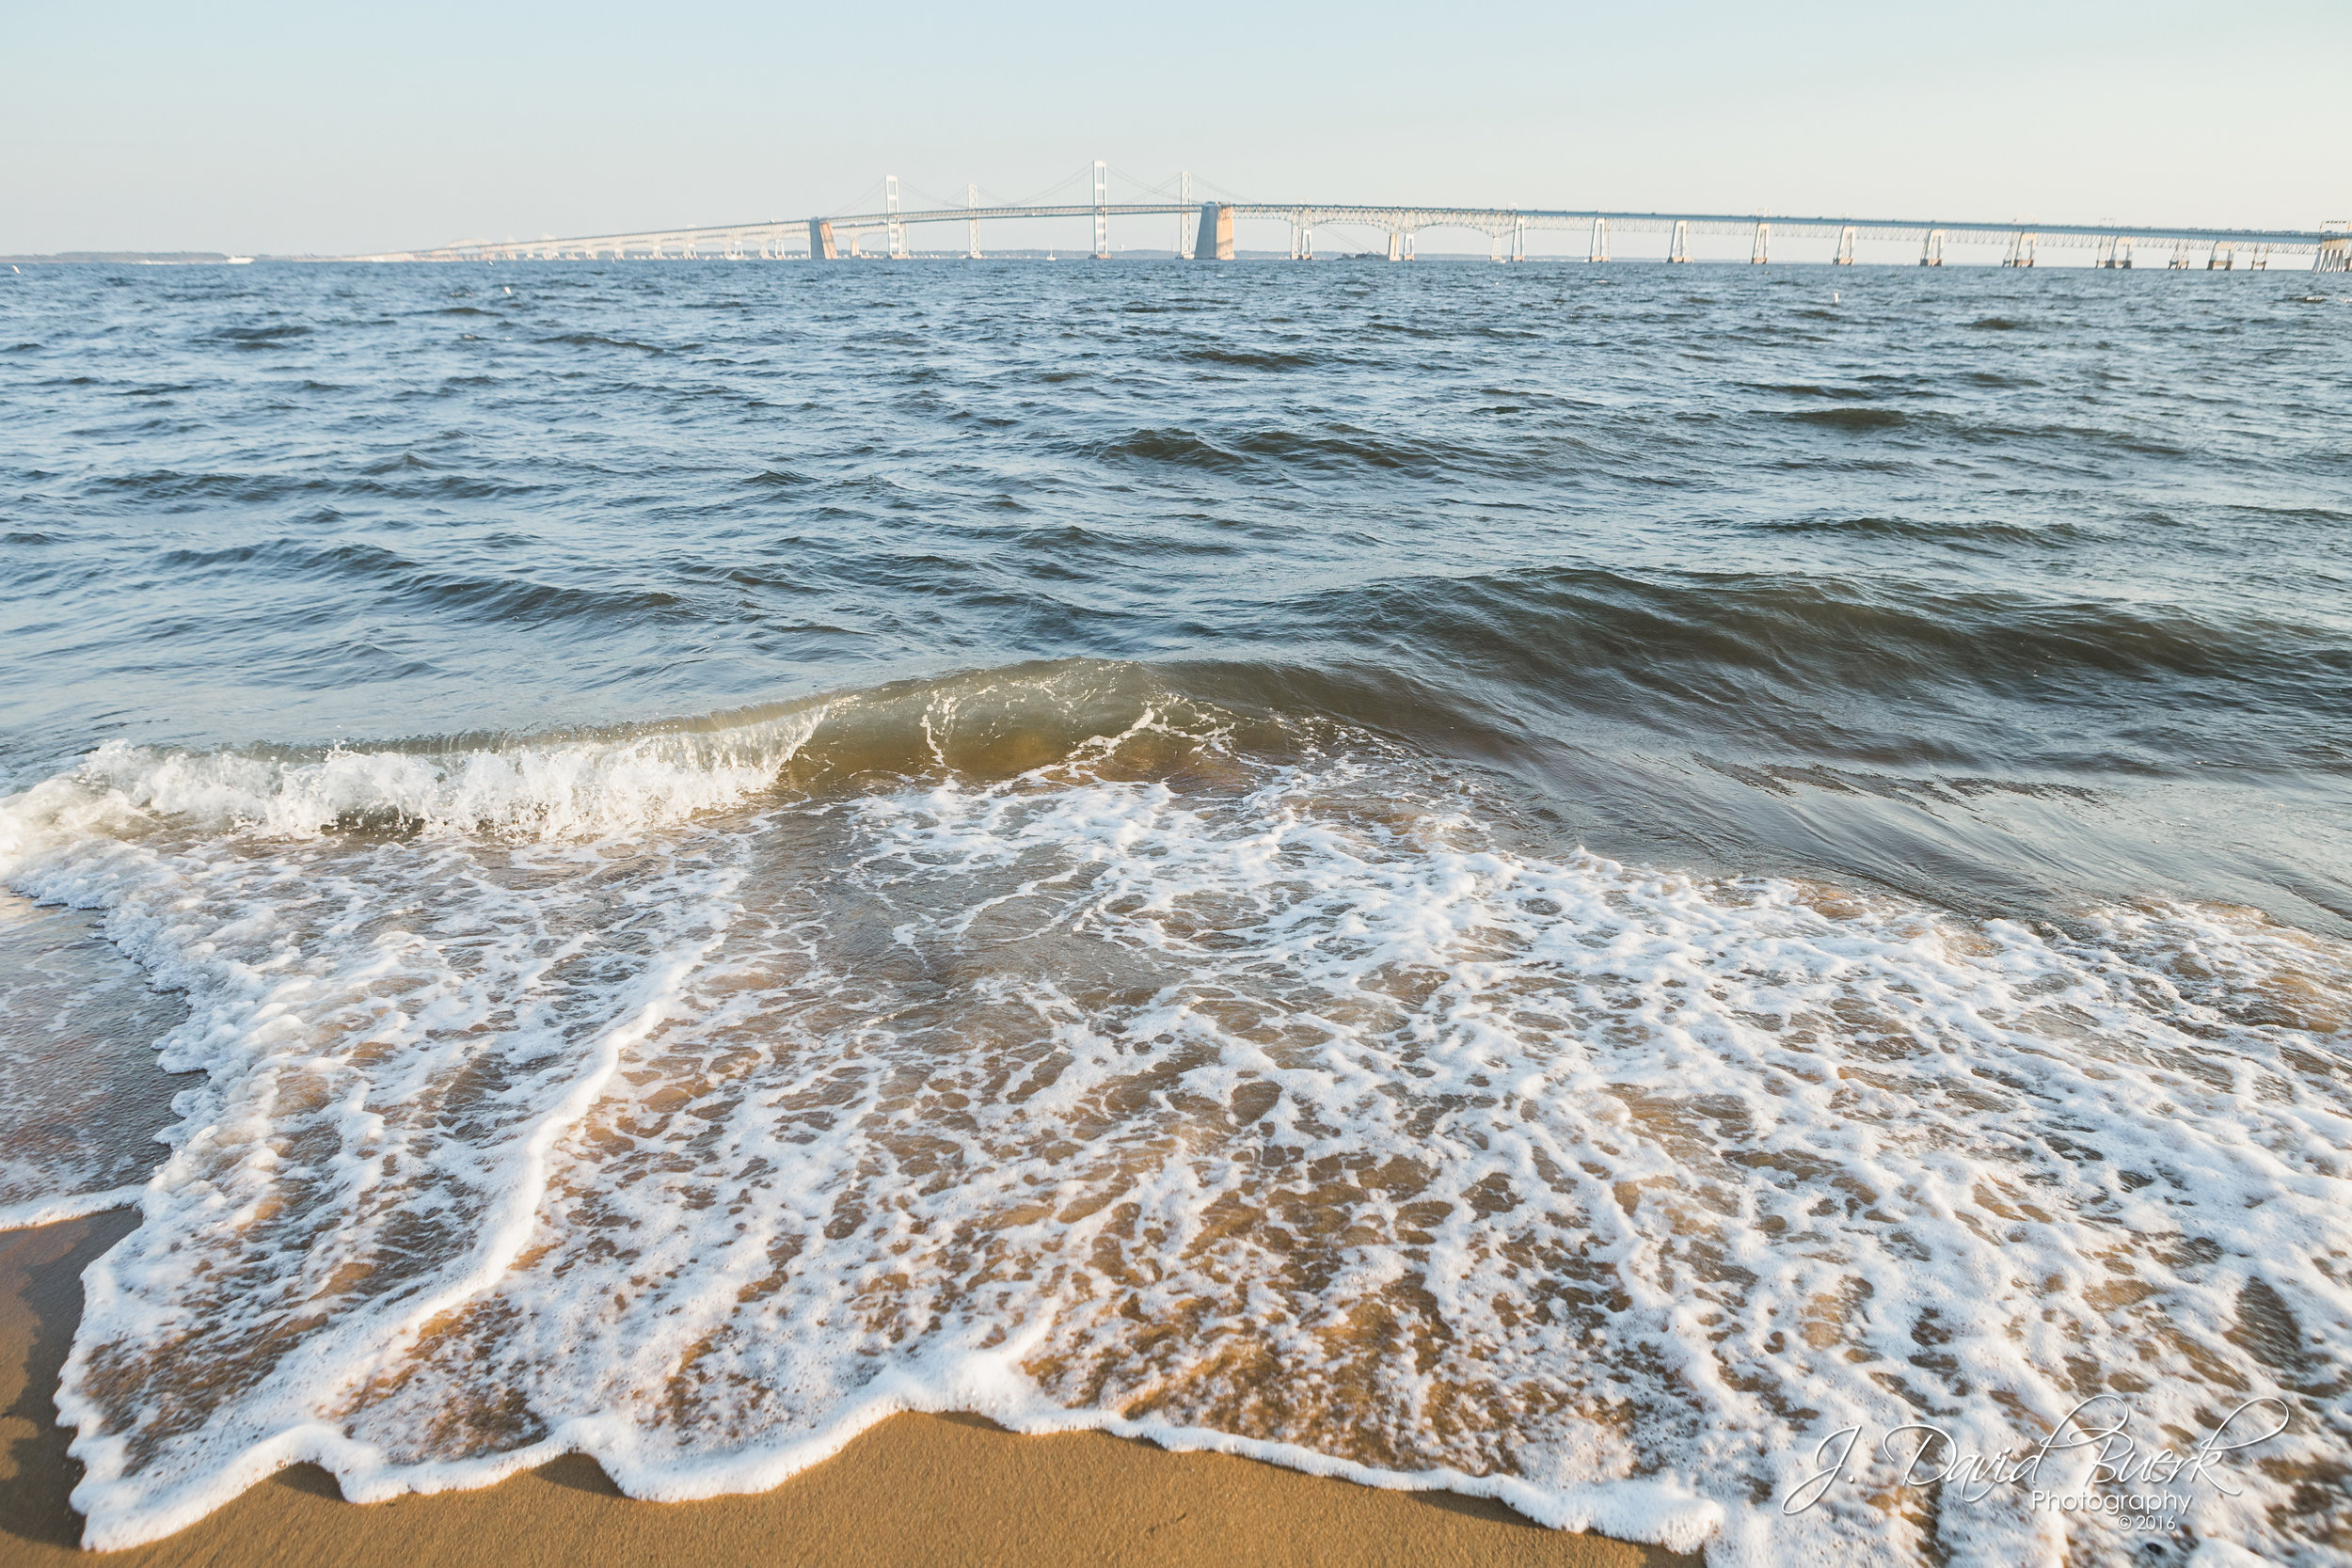 The tide rolls in on the Chesapeake Bay with the Chesapeake Bay Bridge in the distance on a cool Summer day at Sandy Point State Park in Annapolis, Maryland.